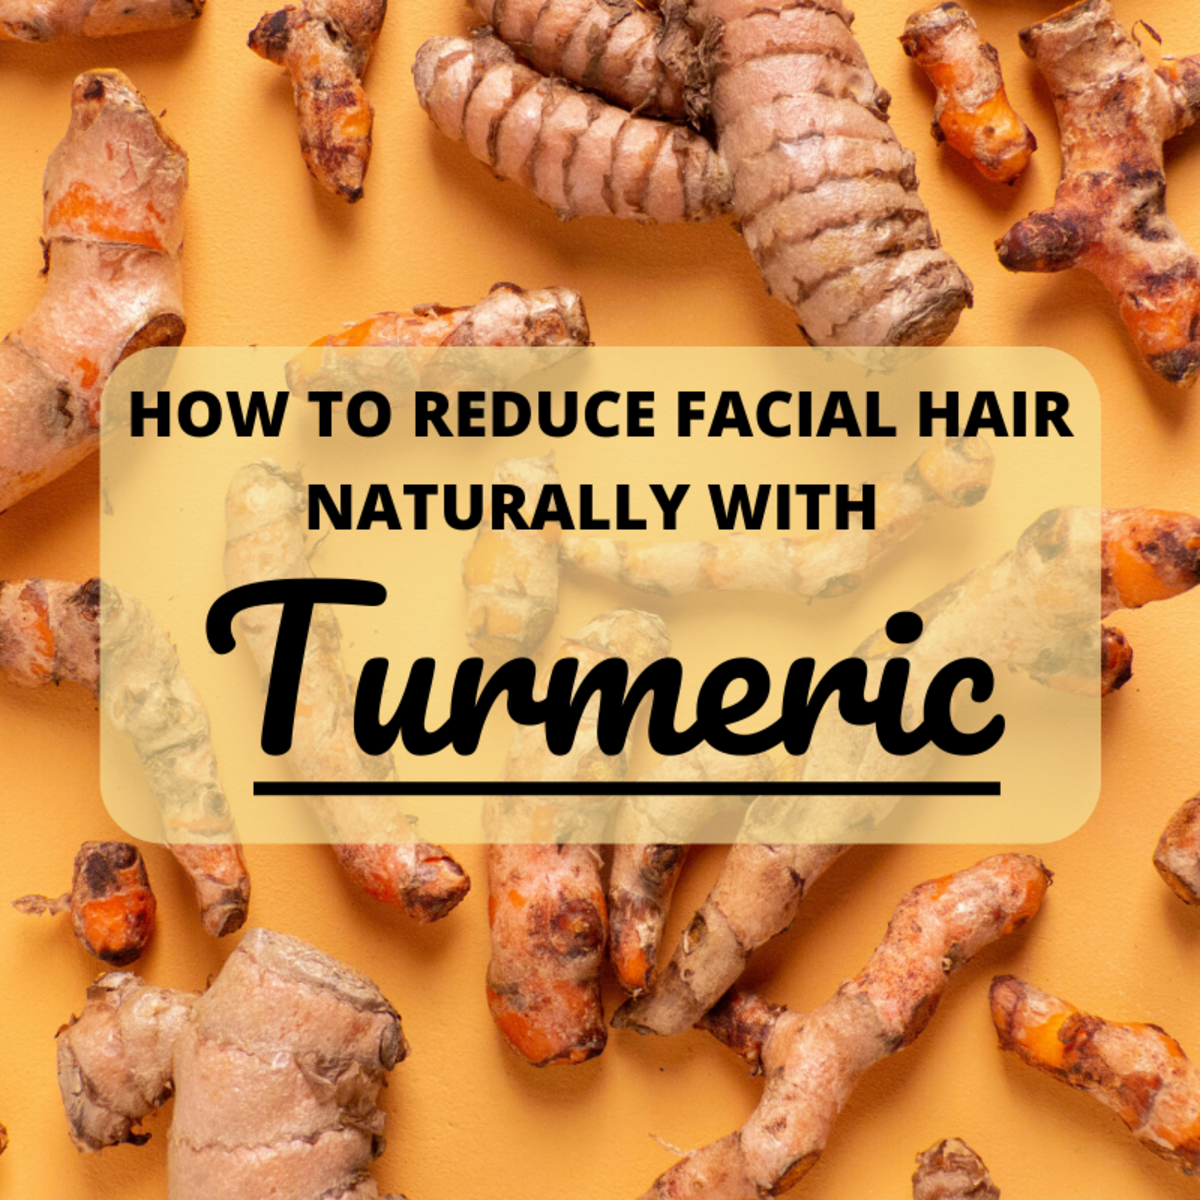 Did you know turmeric, a common cooking spice, could help you reduce the appearance of unwanted facial hair over time?